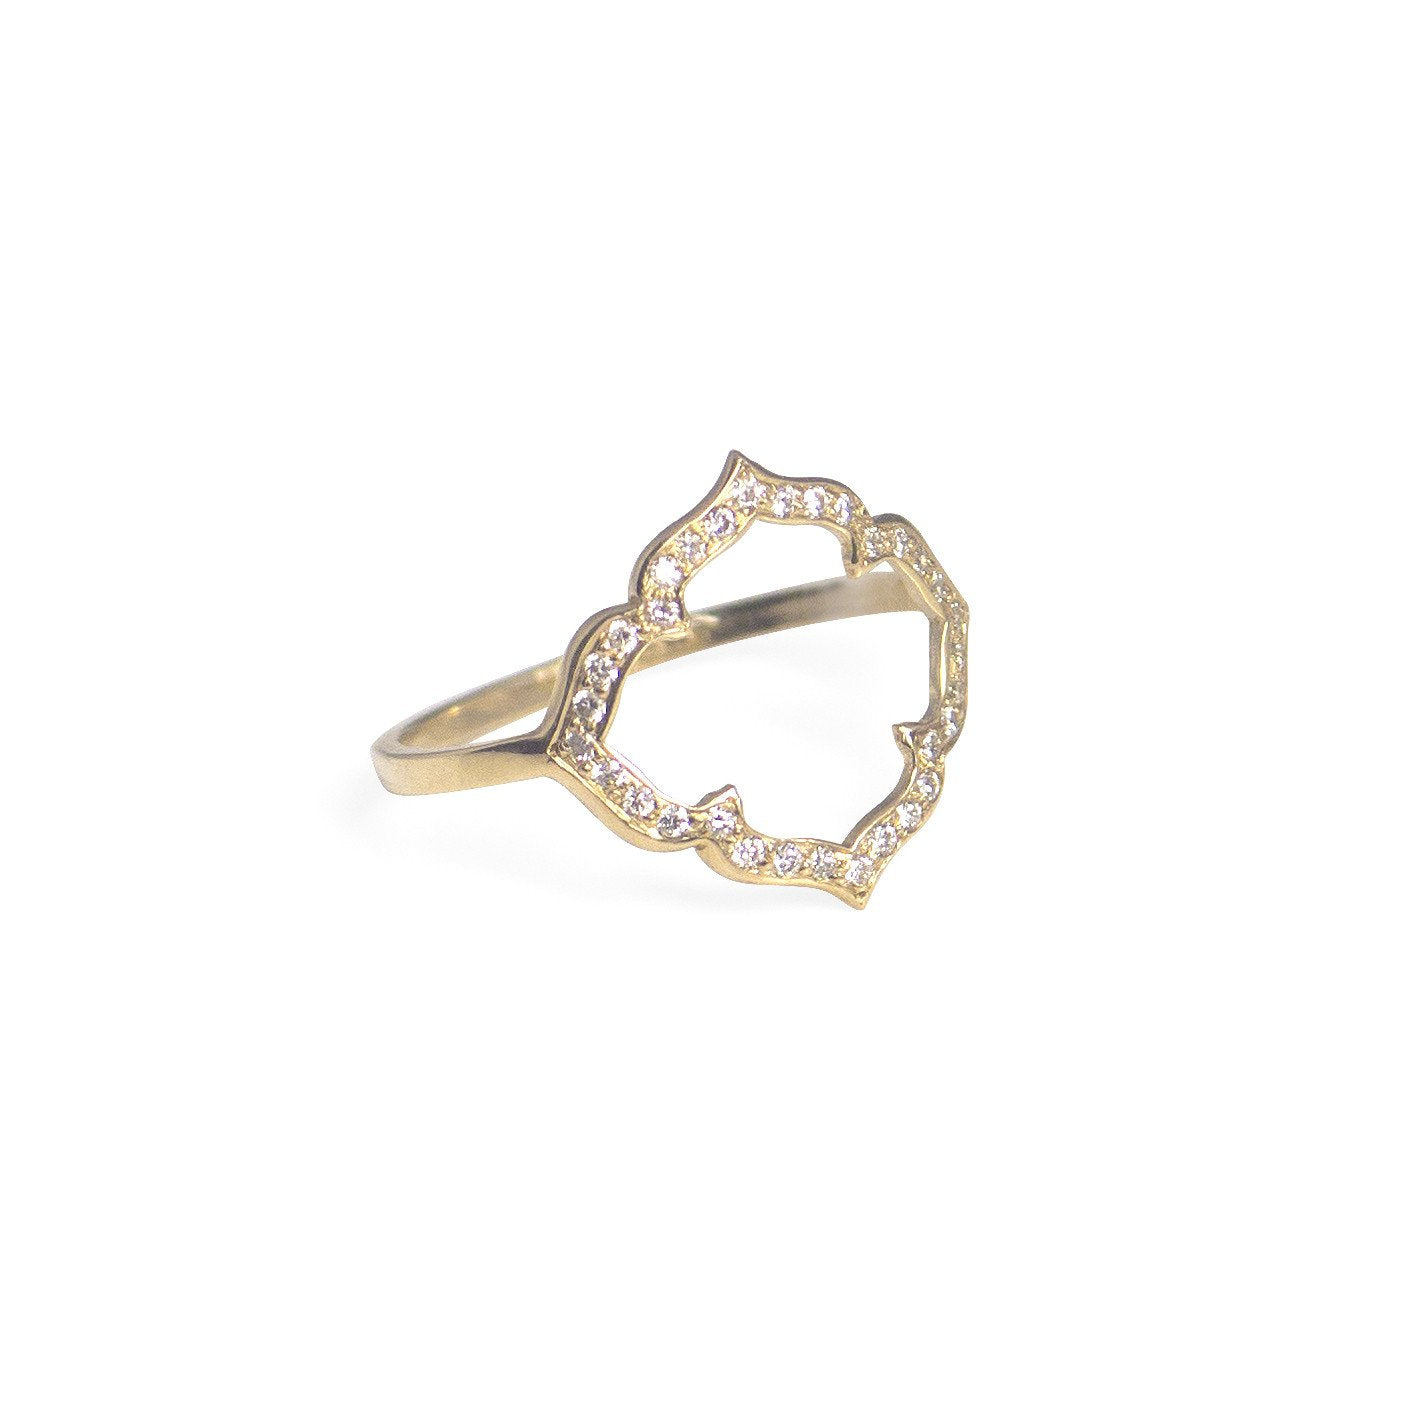 14k yellow gold with white pave diamonds / 5 clover ring